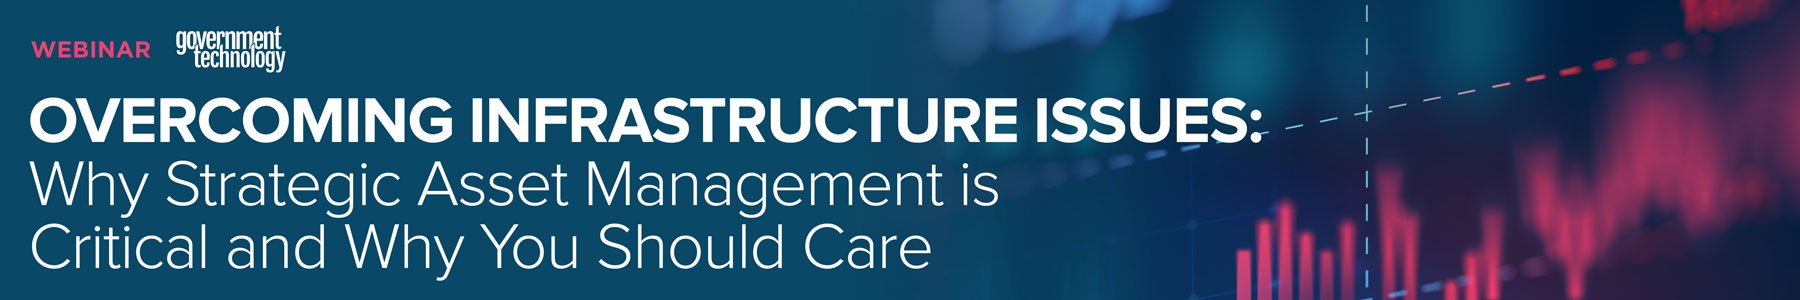 Overcoming Infrastructure Issues: Why Strategic Asset Management is Critical and Why You Should Care